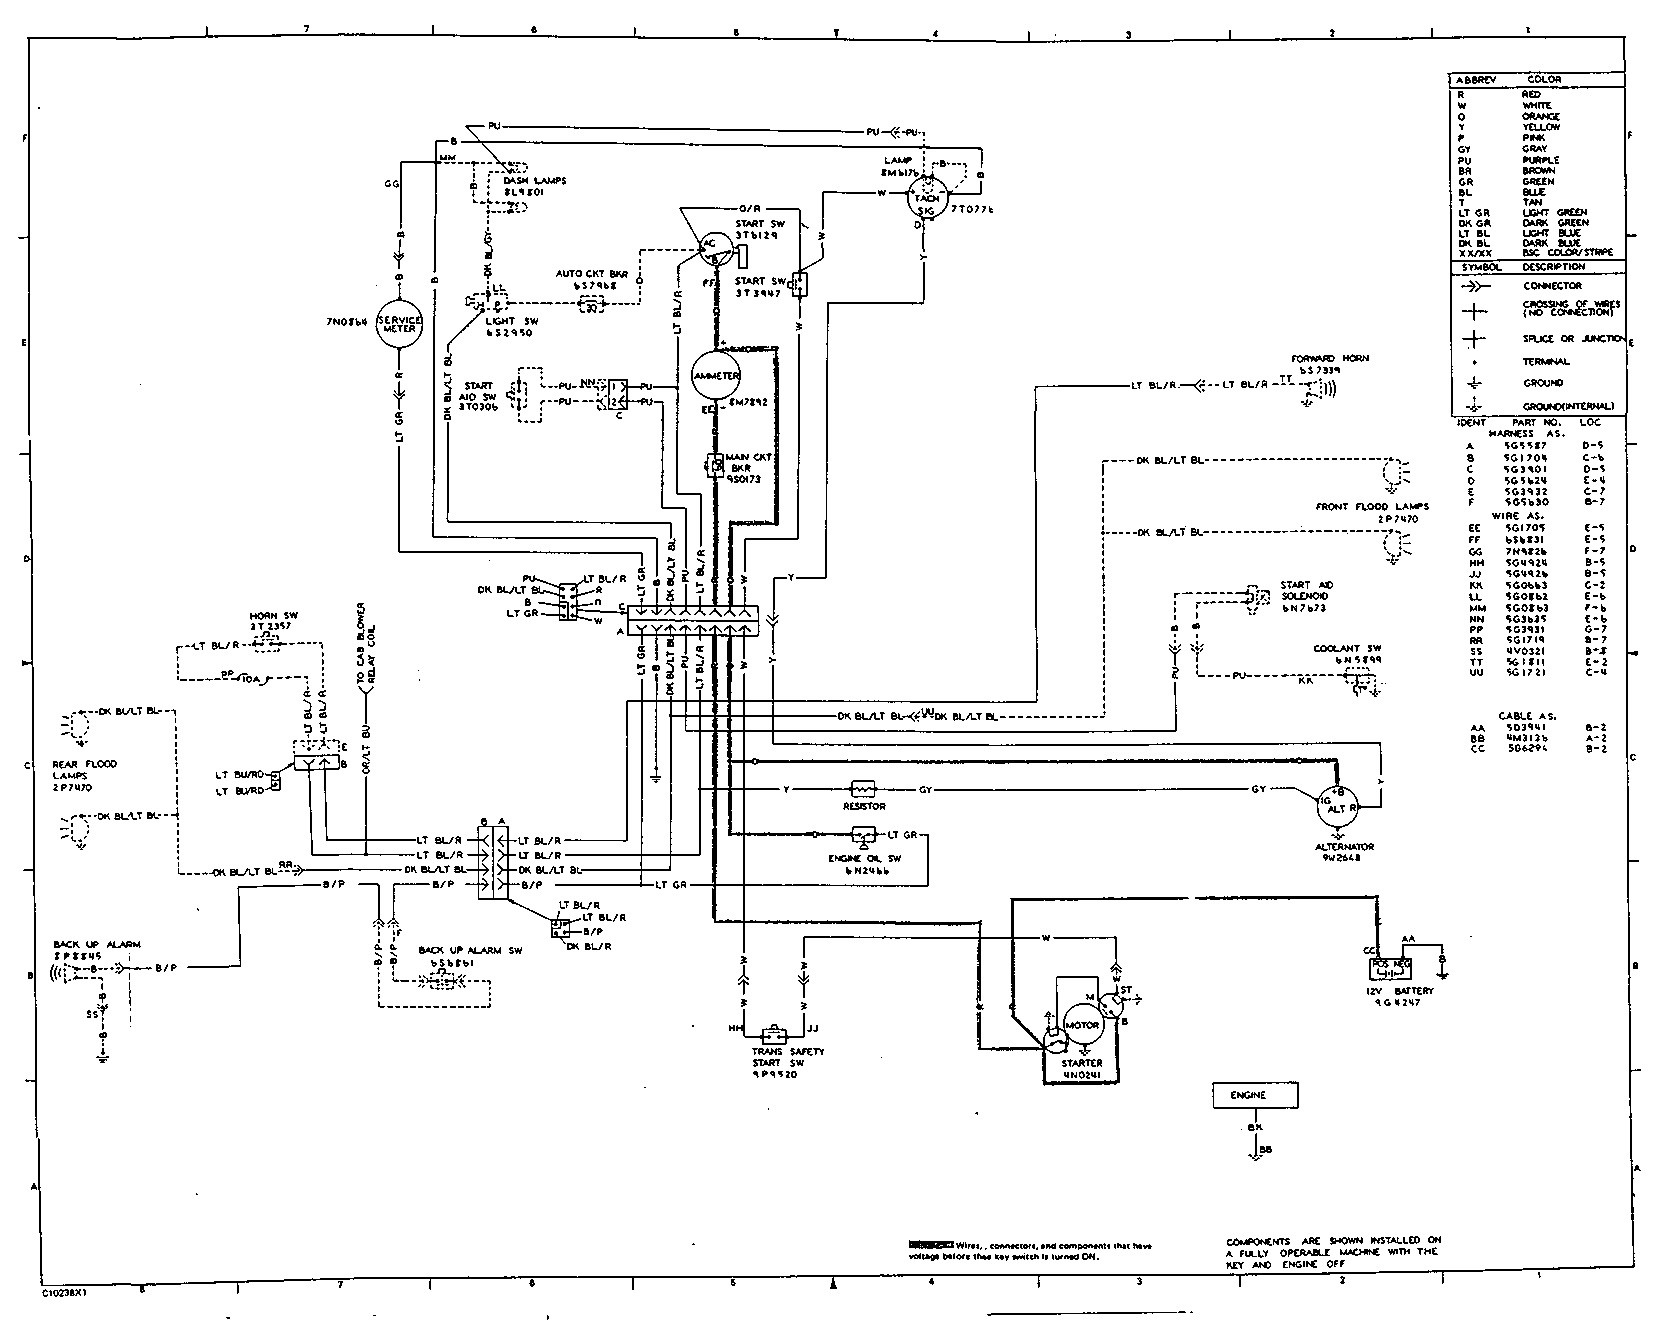 [WRG-0721] Caterpillar C15 Engine Fan Diagram